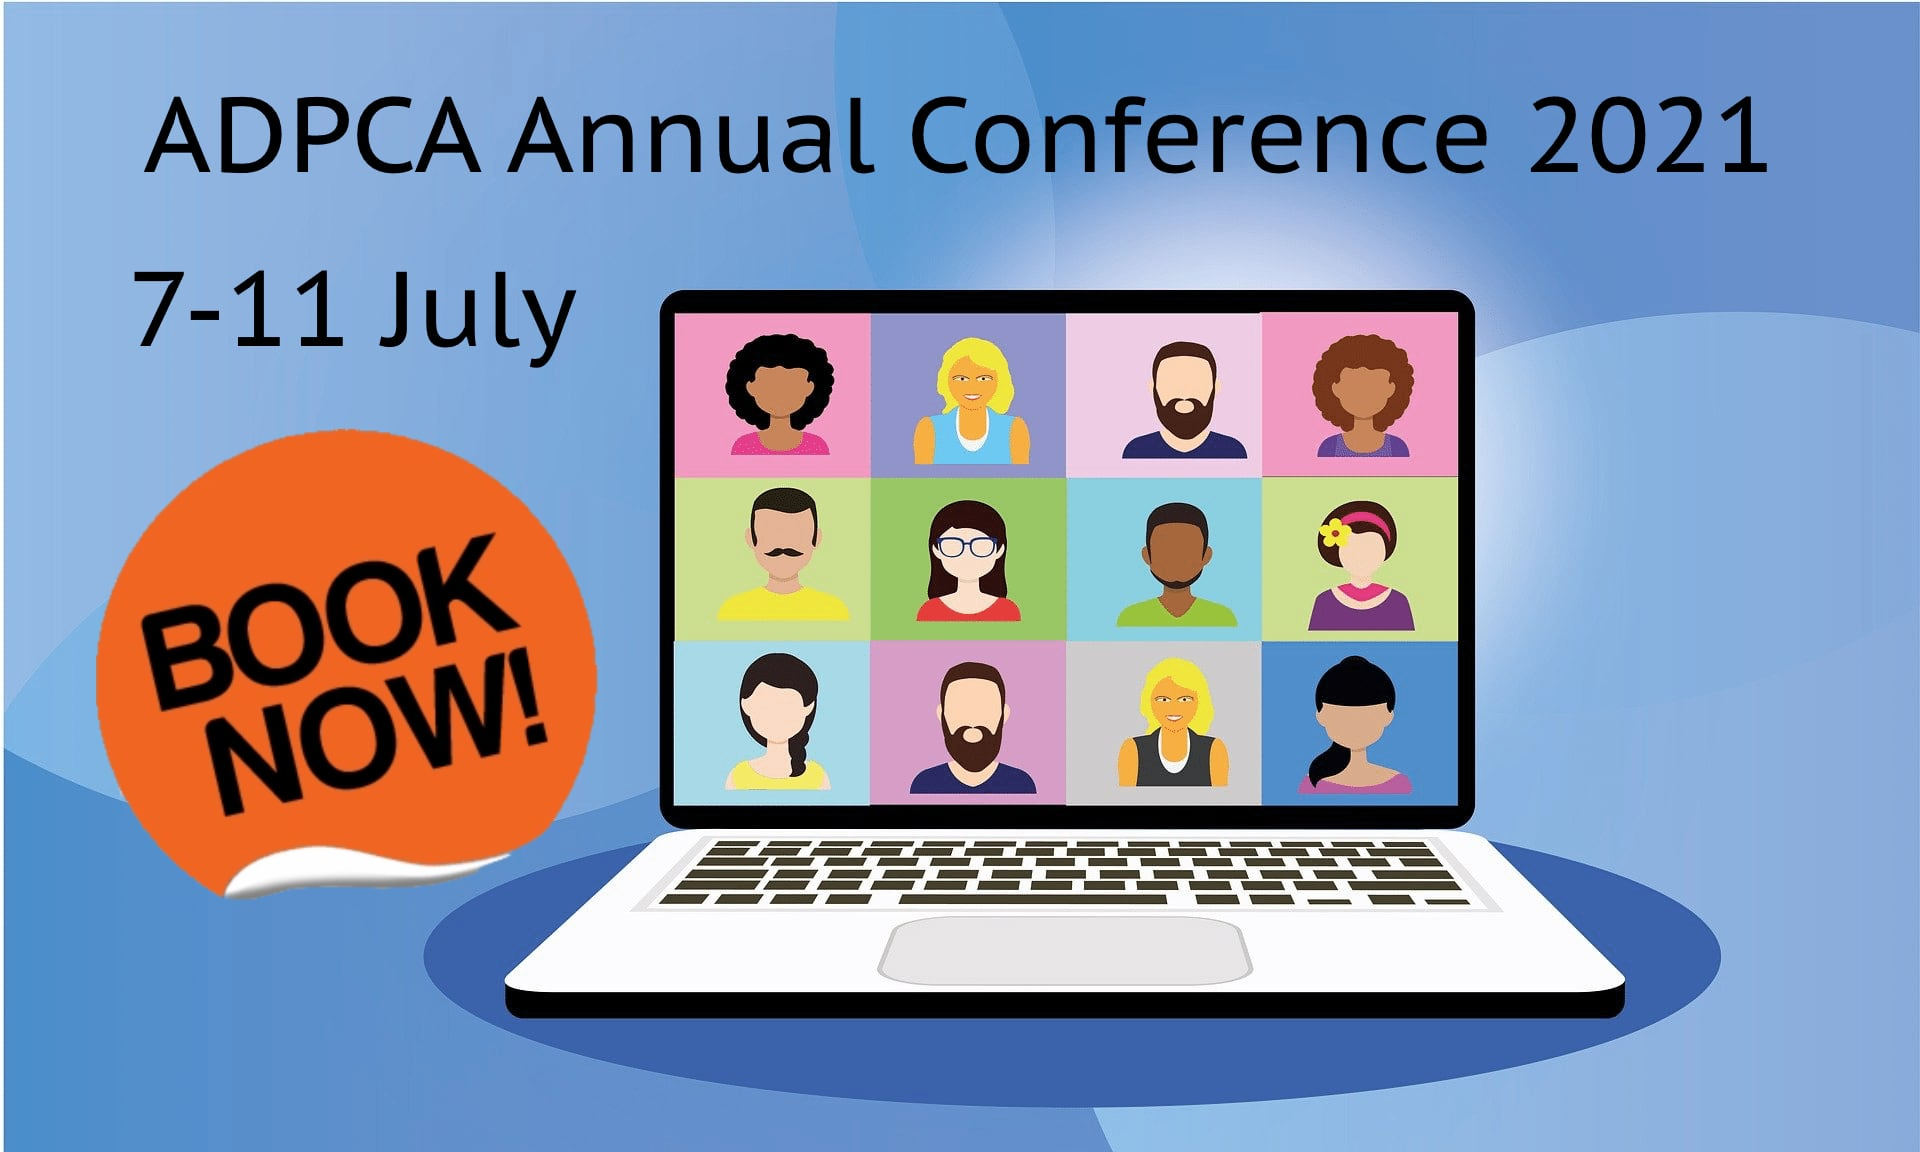 ADPCA Online Conference 2021